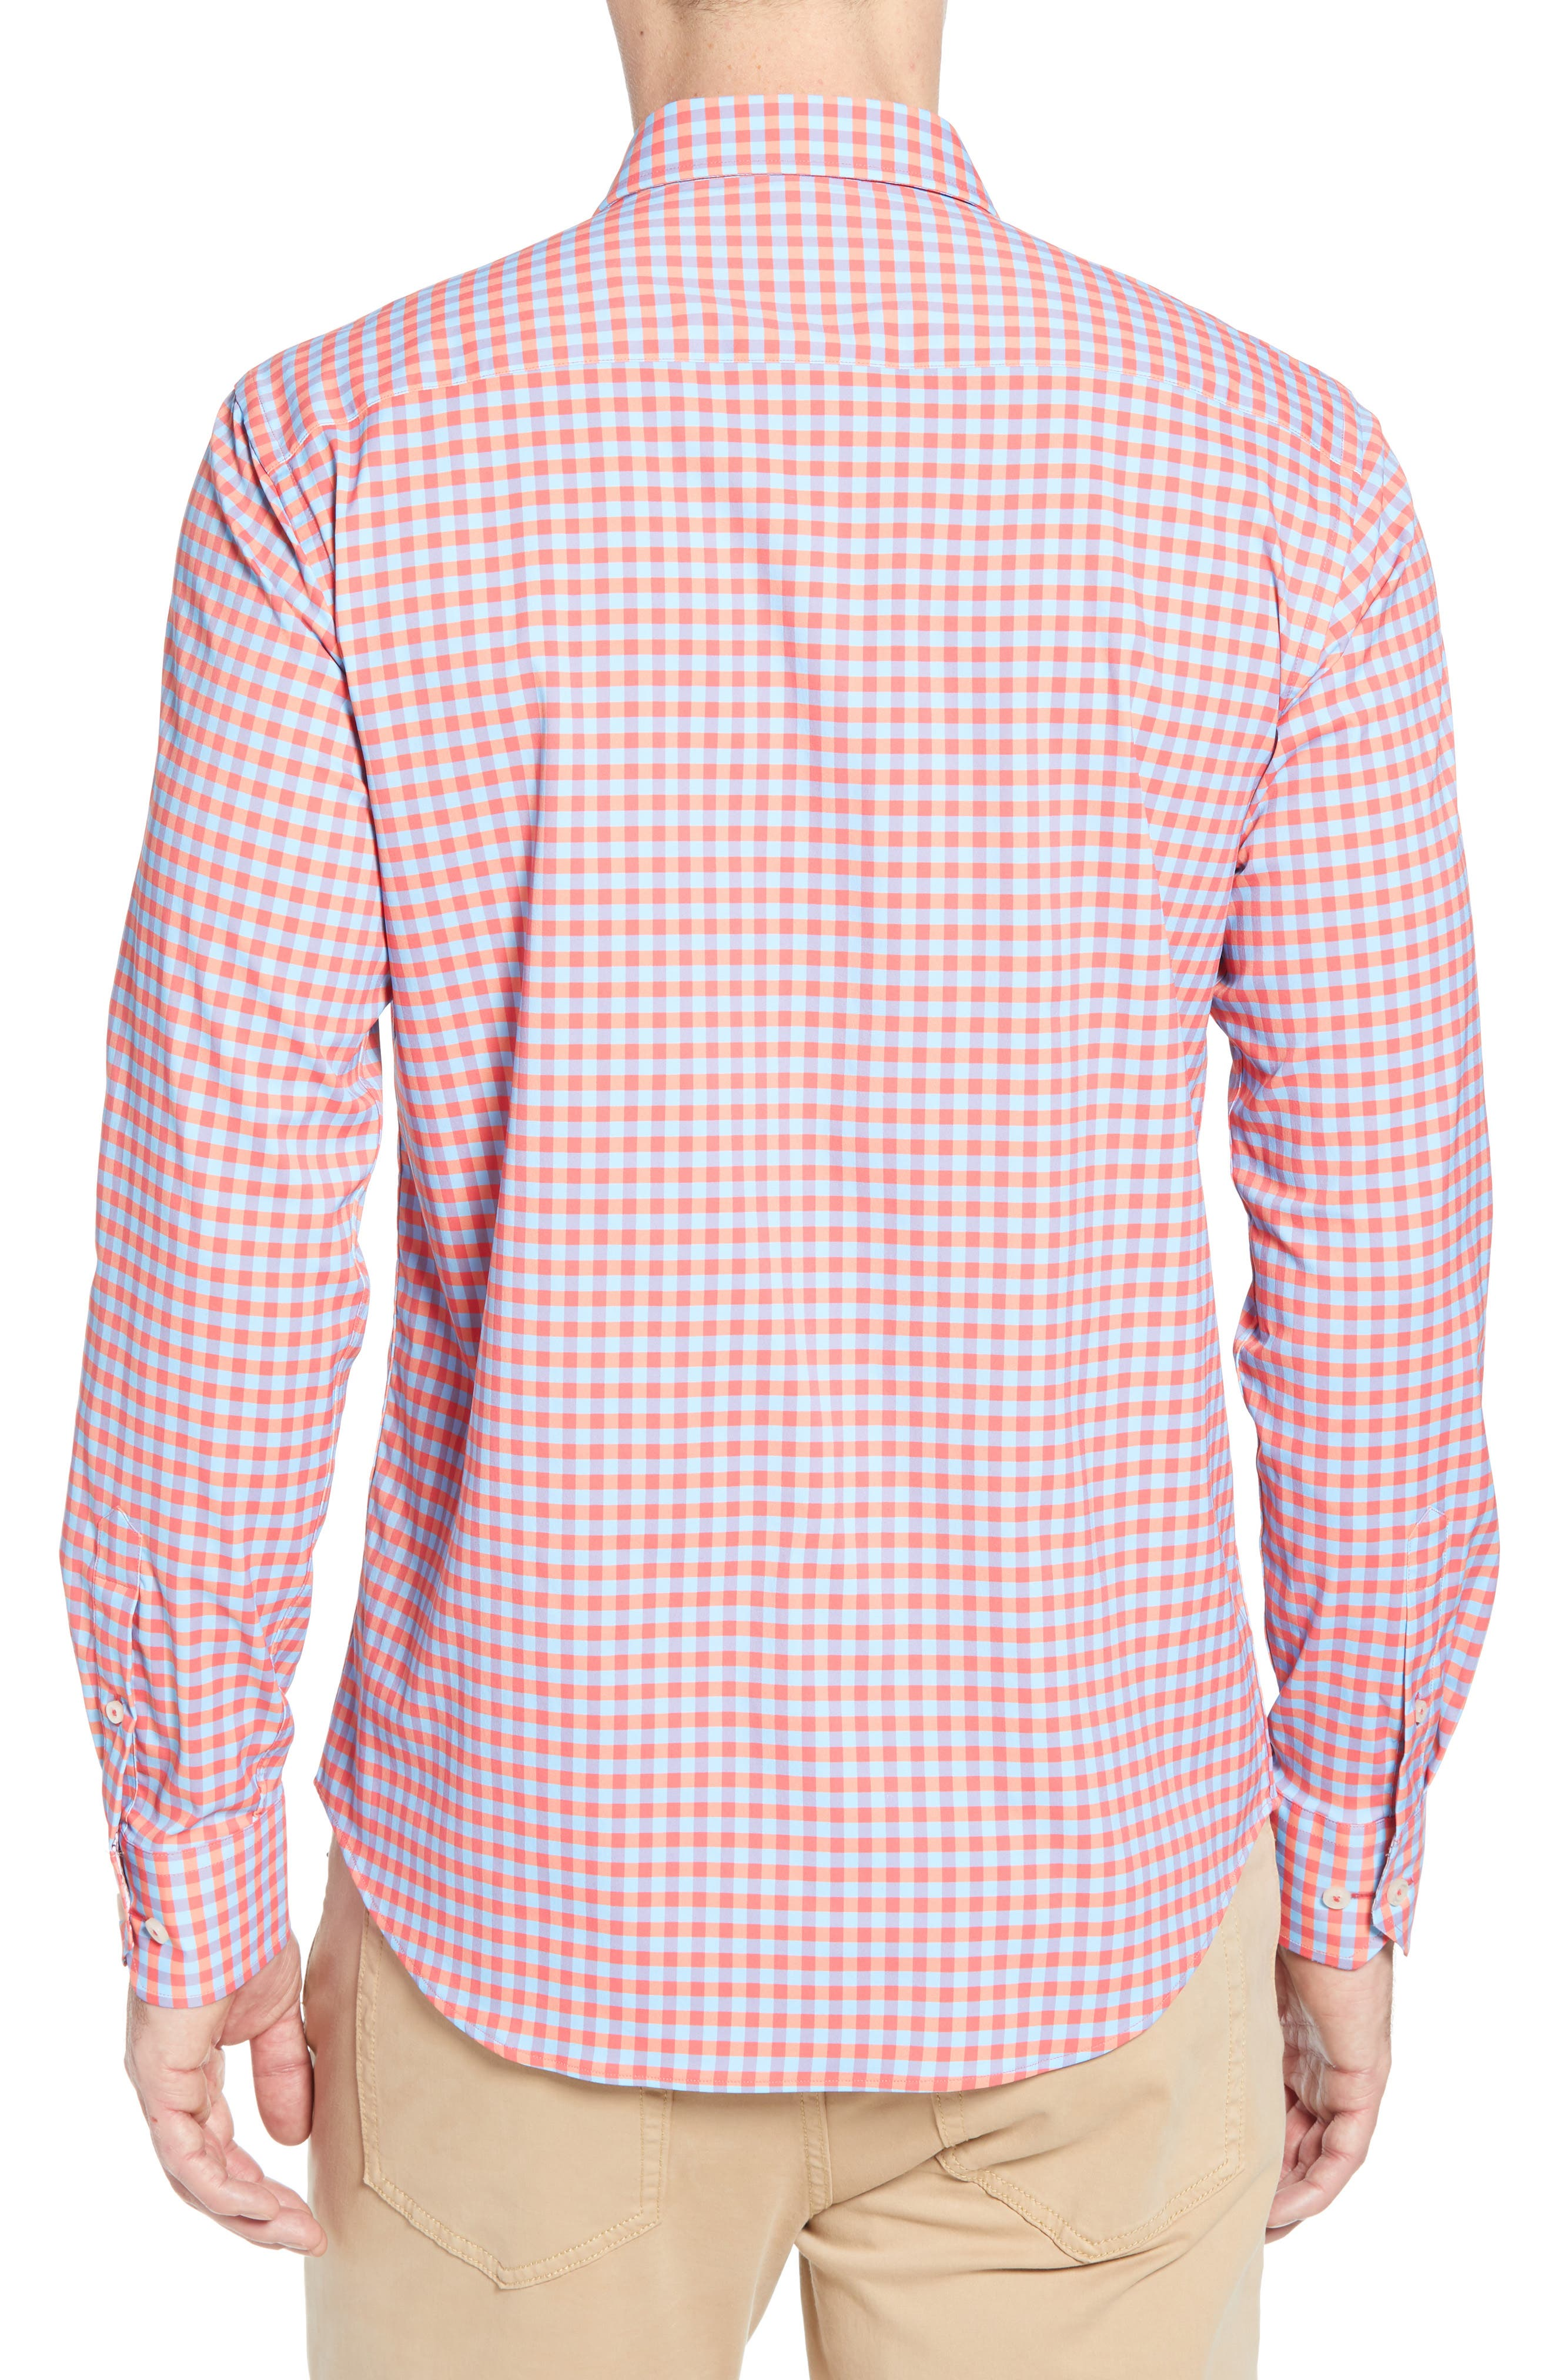 BUGATCHI, Shaped Fit Print Performance Sport Shirt, Alternate thumbnail 3, color, RUBY